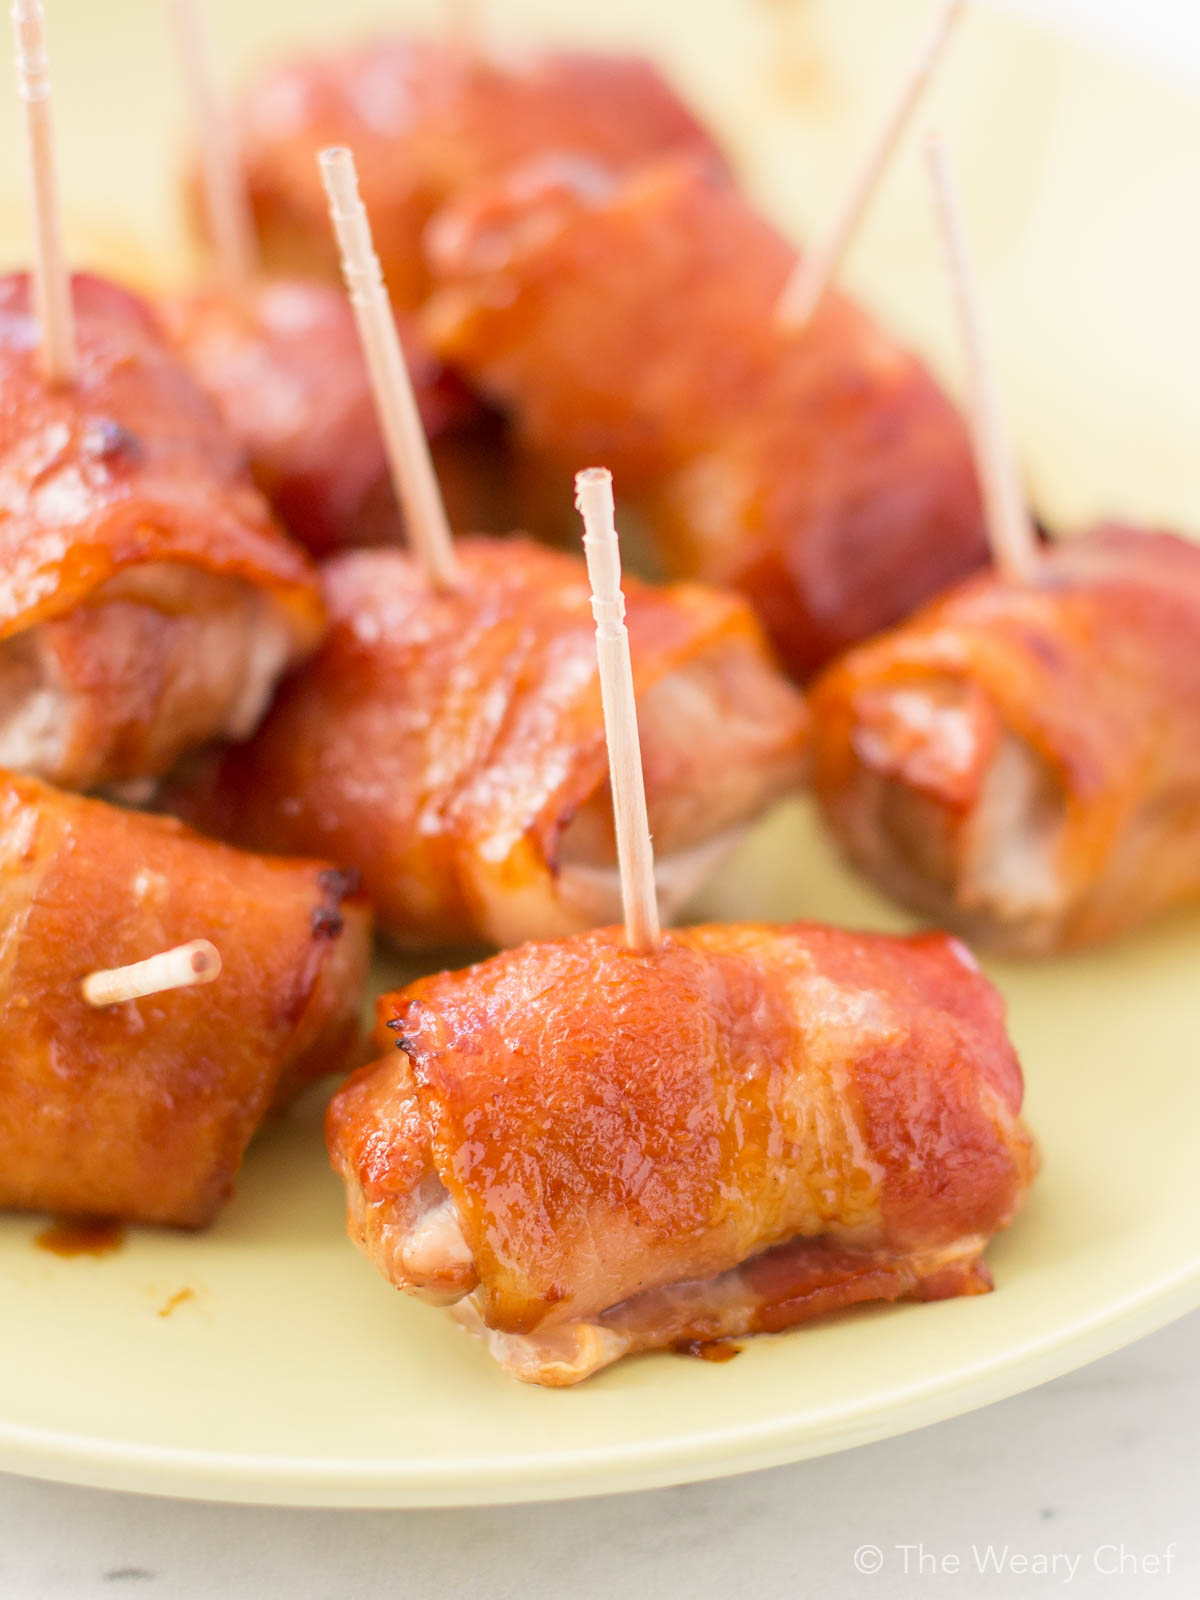 These super easy bacon-wrapped pork bites with teriyaki sauce will be the stars of any party!